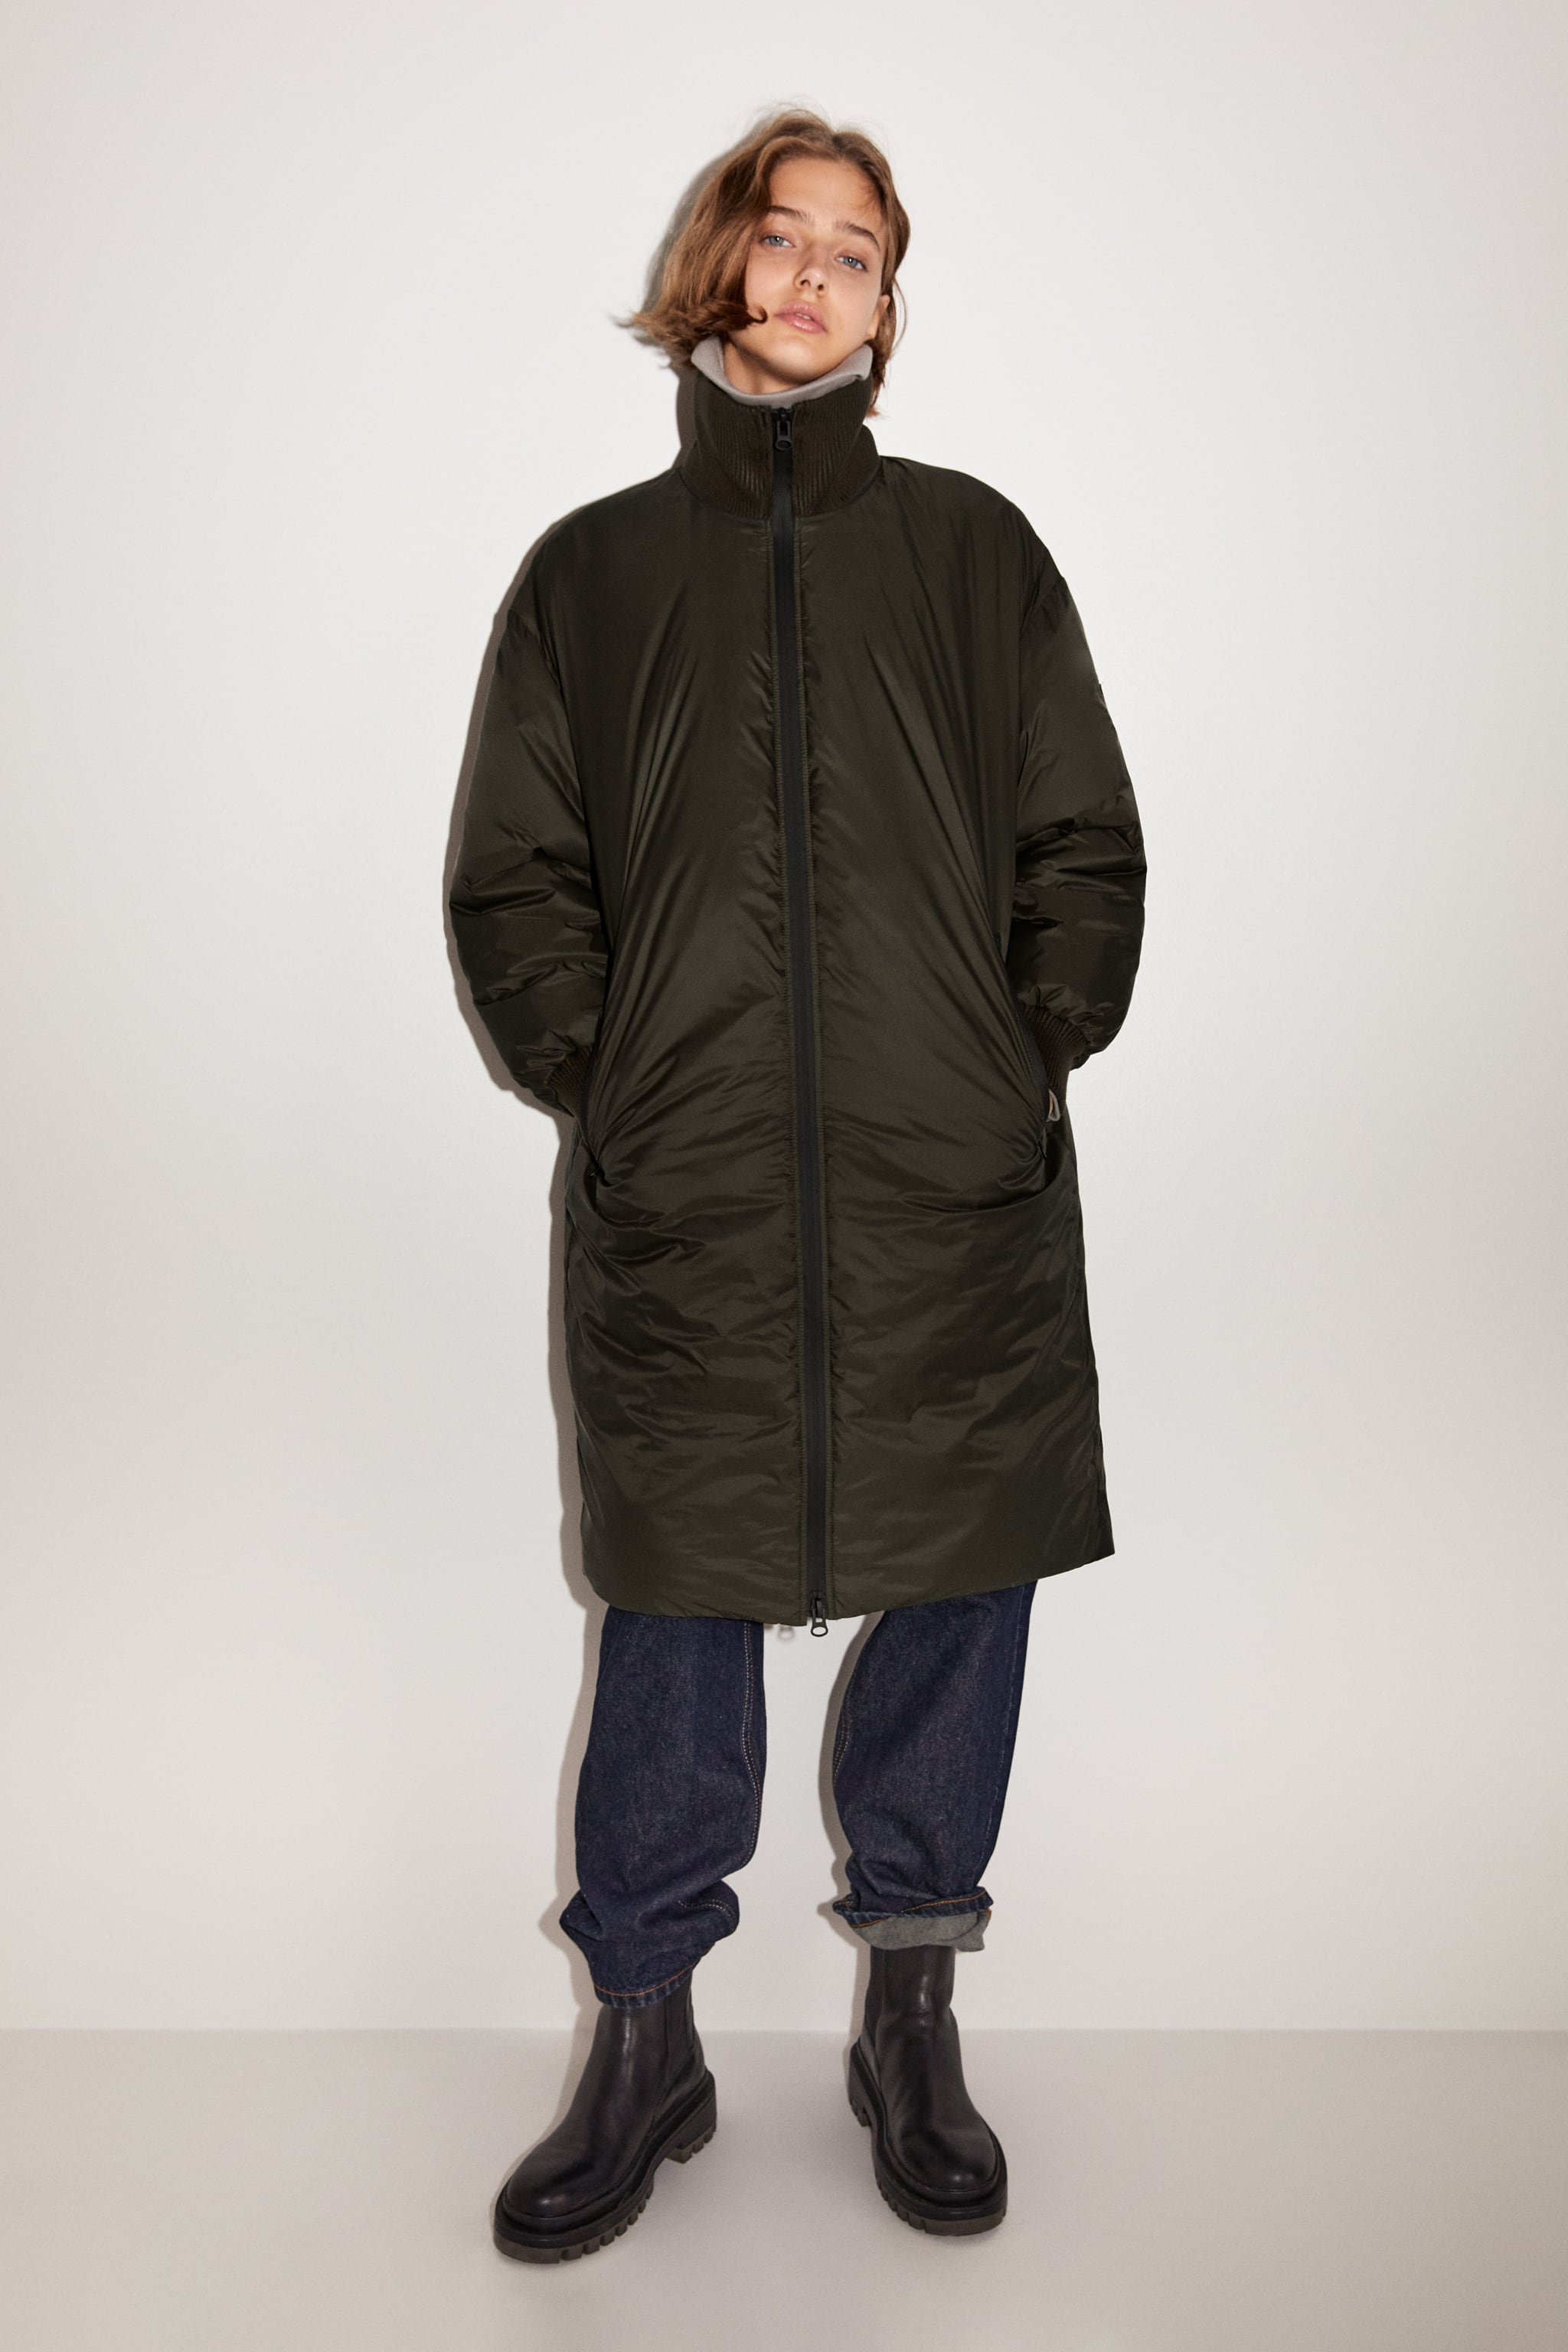 Zara LIMITED EDITION WATER AND WIND PROTECTION PUFFER COAT